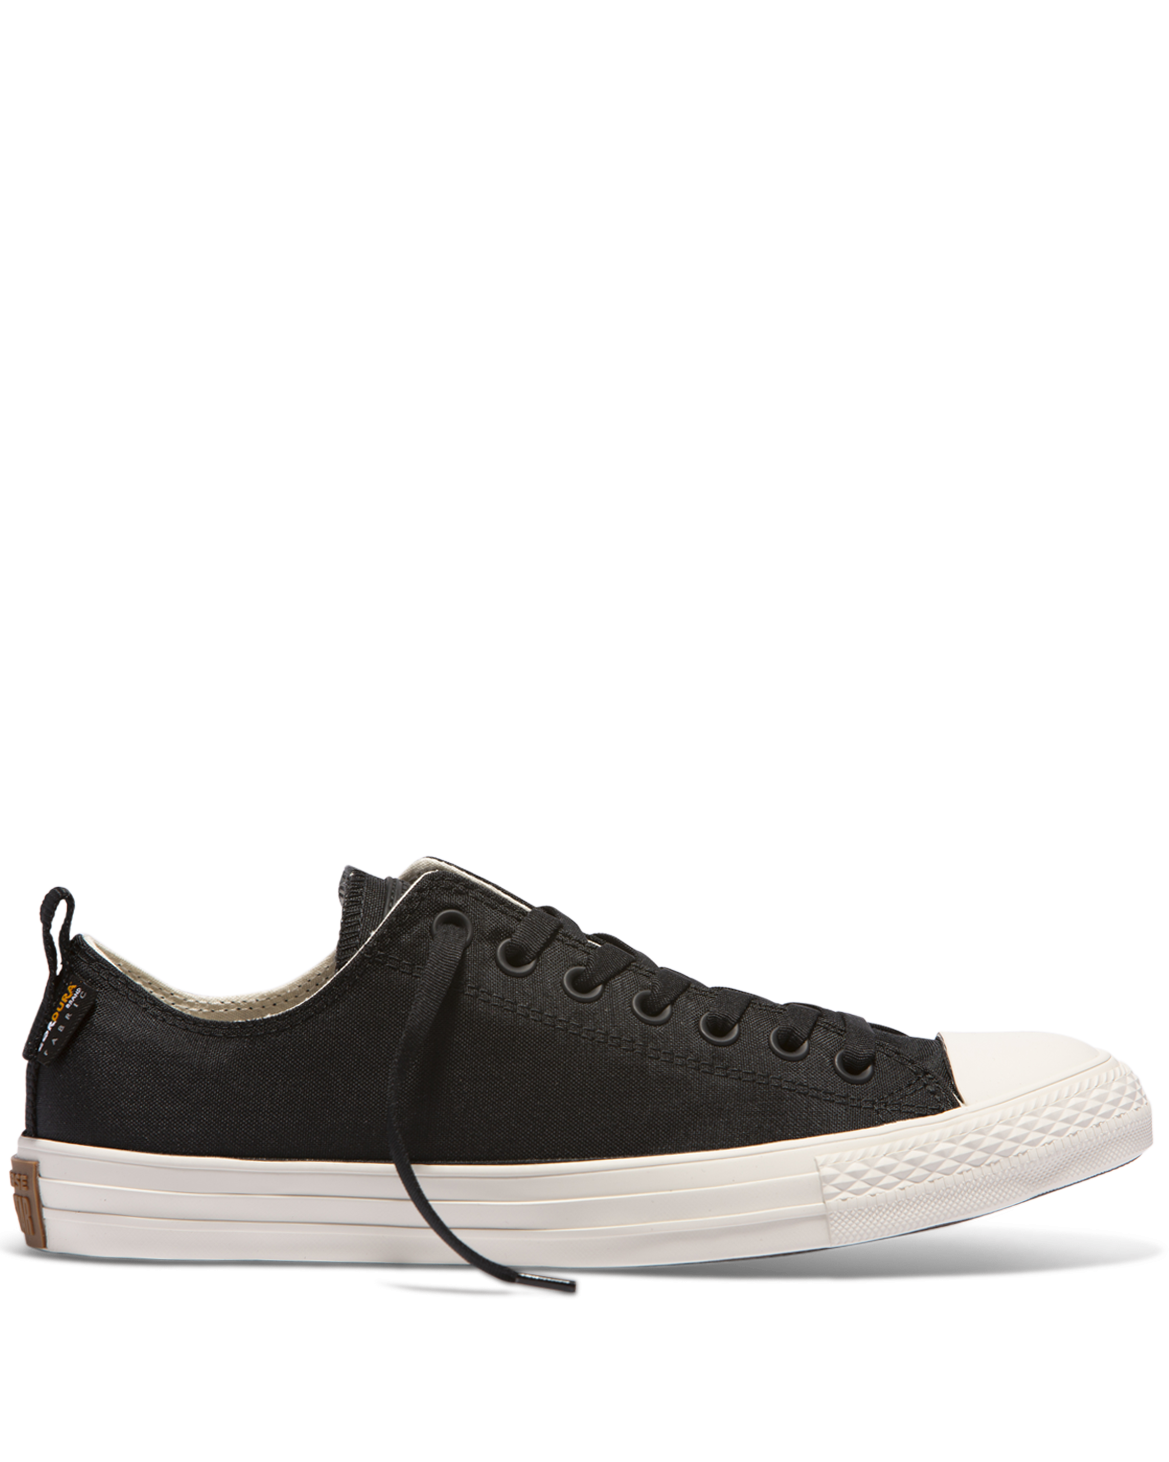 2ba9f42b4fc49 Converse Chuck Taylor All Star Cordura Low Top - Black is classic low top  chuck taylor made from durable Cordura.